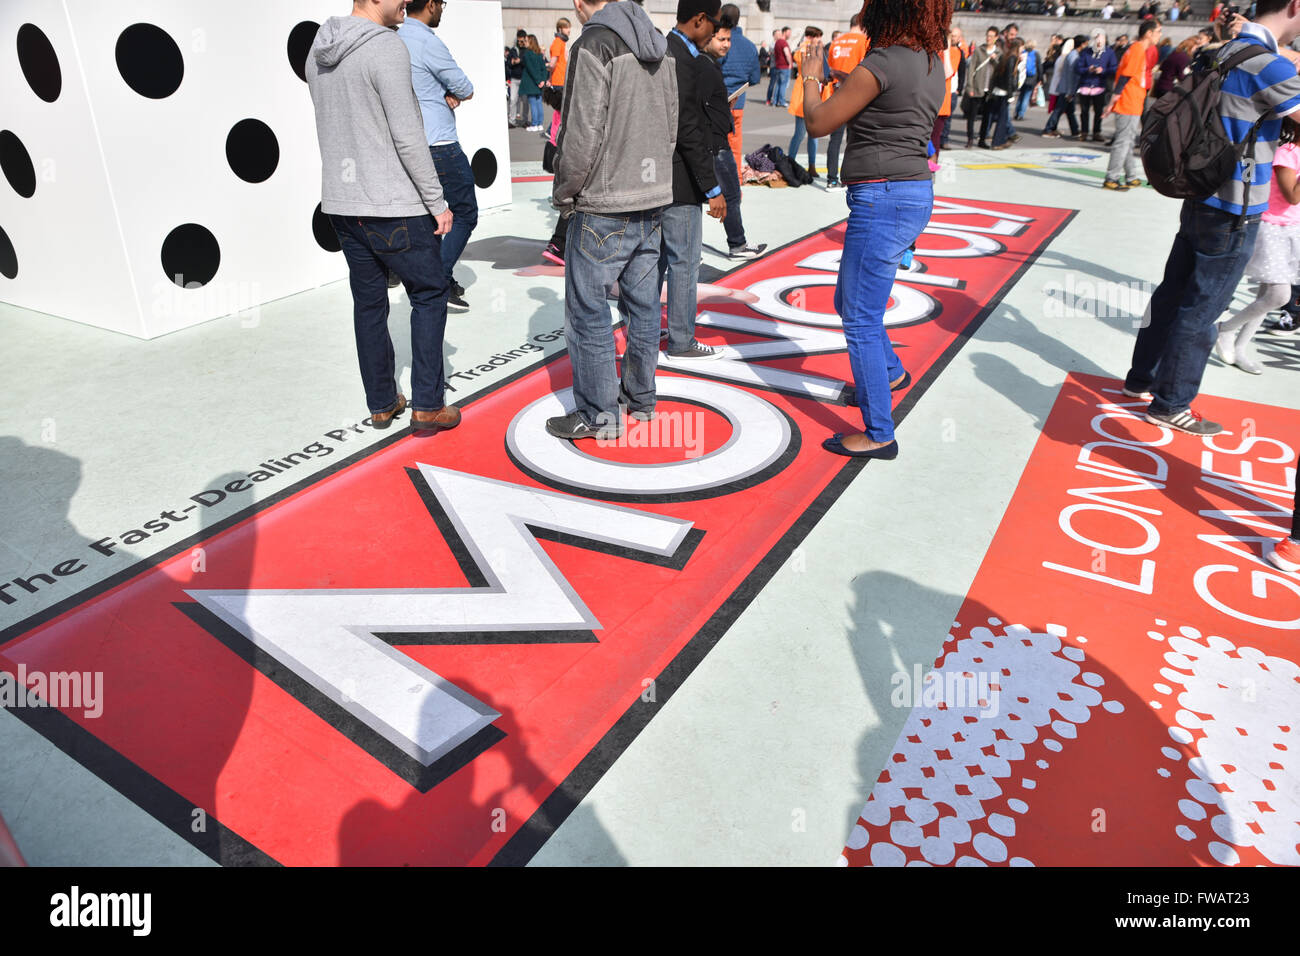 Trafalgar Square, London, UK. 2nd April 2016. Giant Monopoly board in Trafalgar Square as part of the London Games - Stock Image